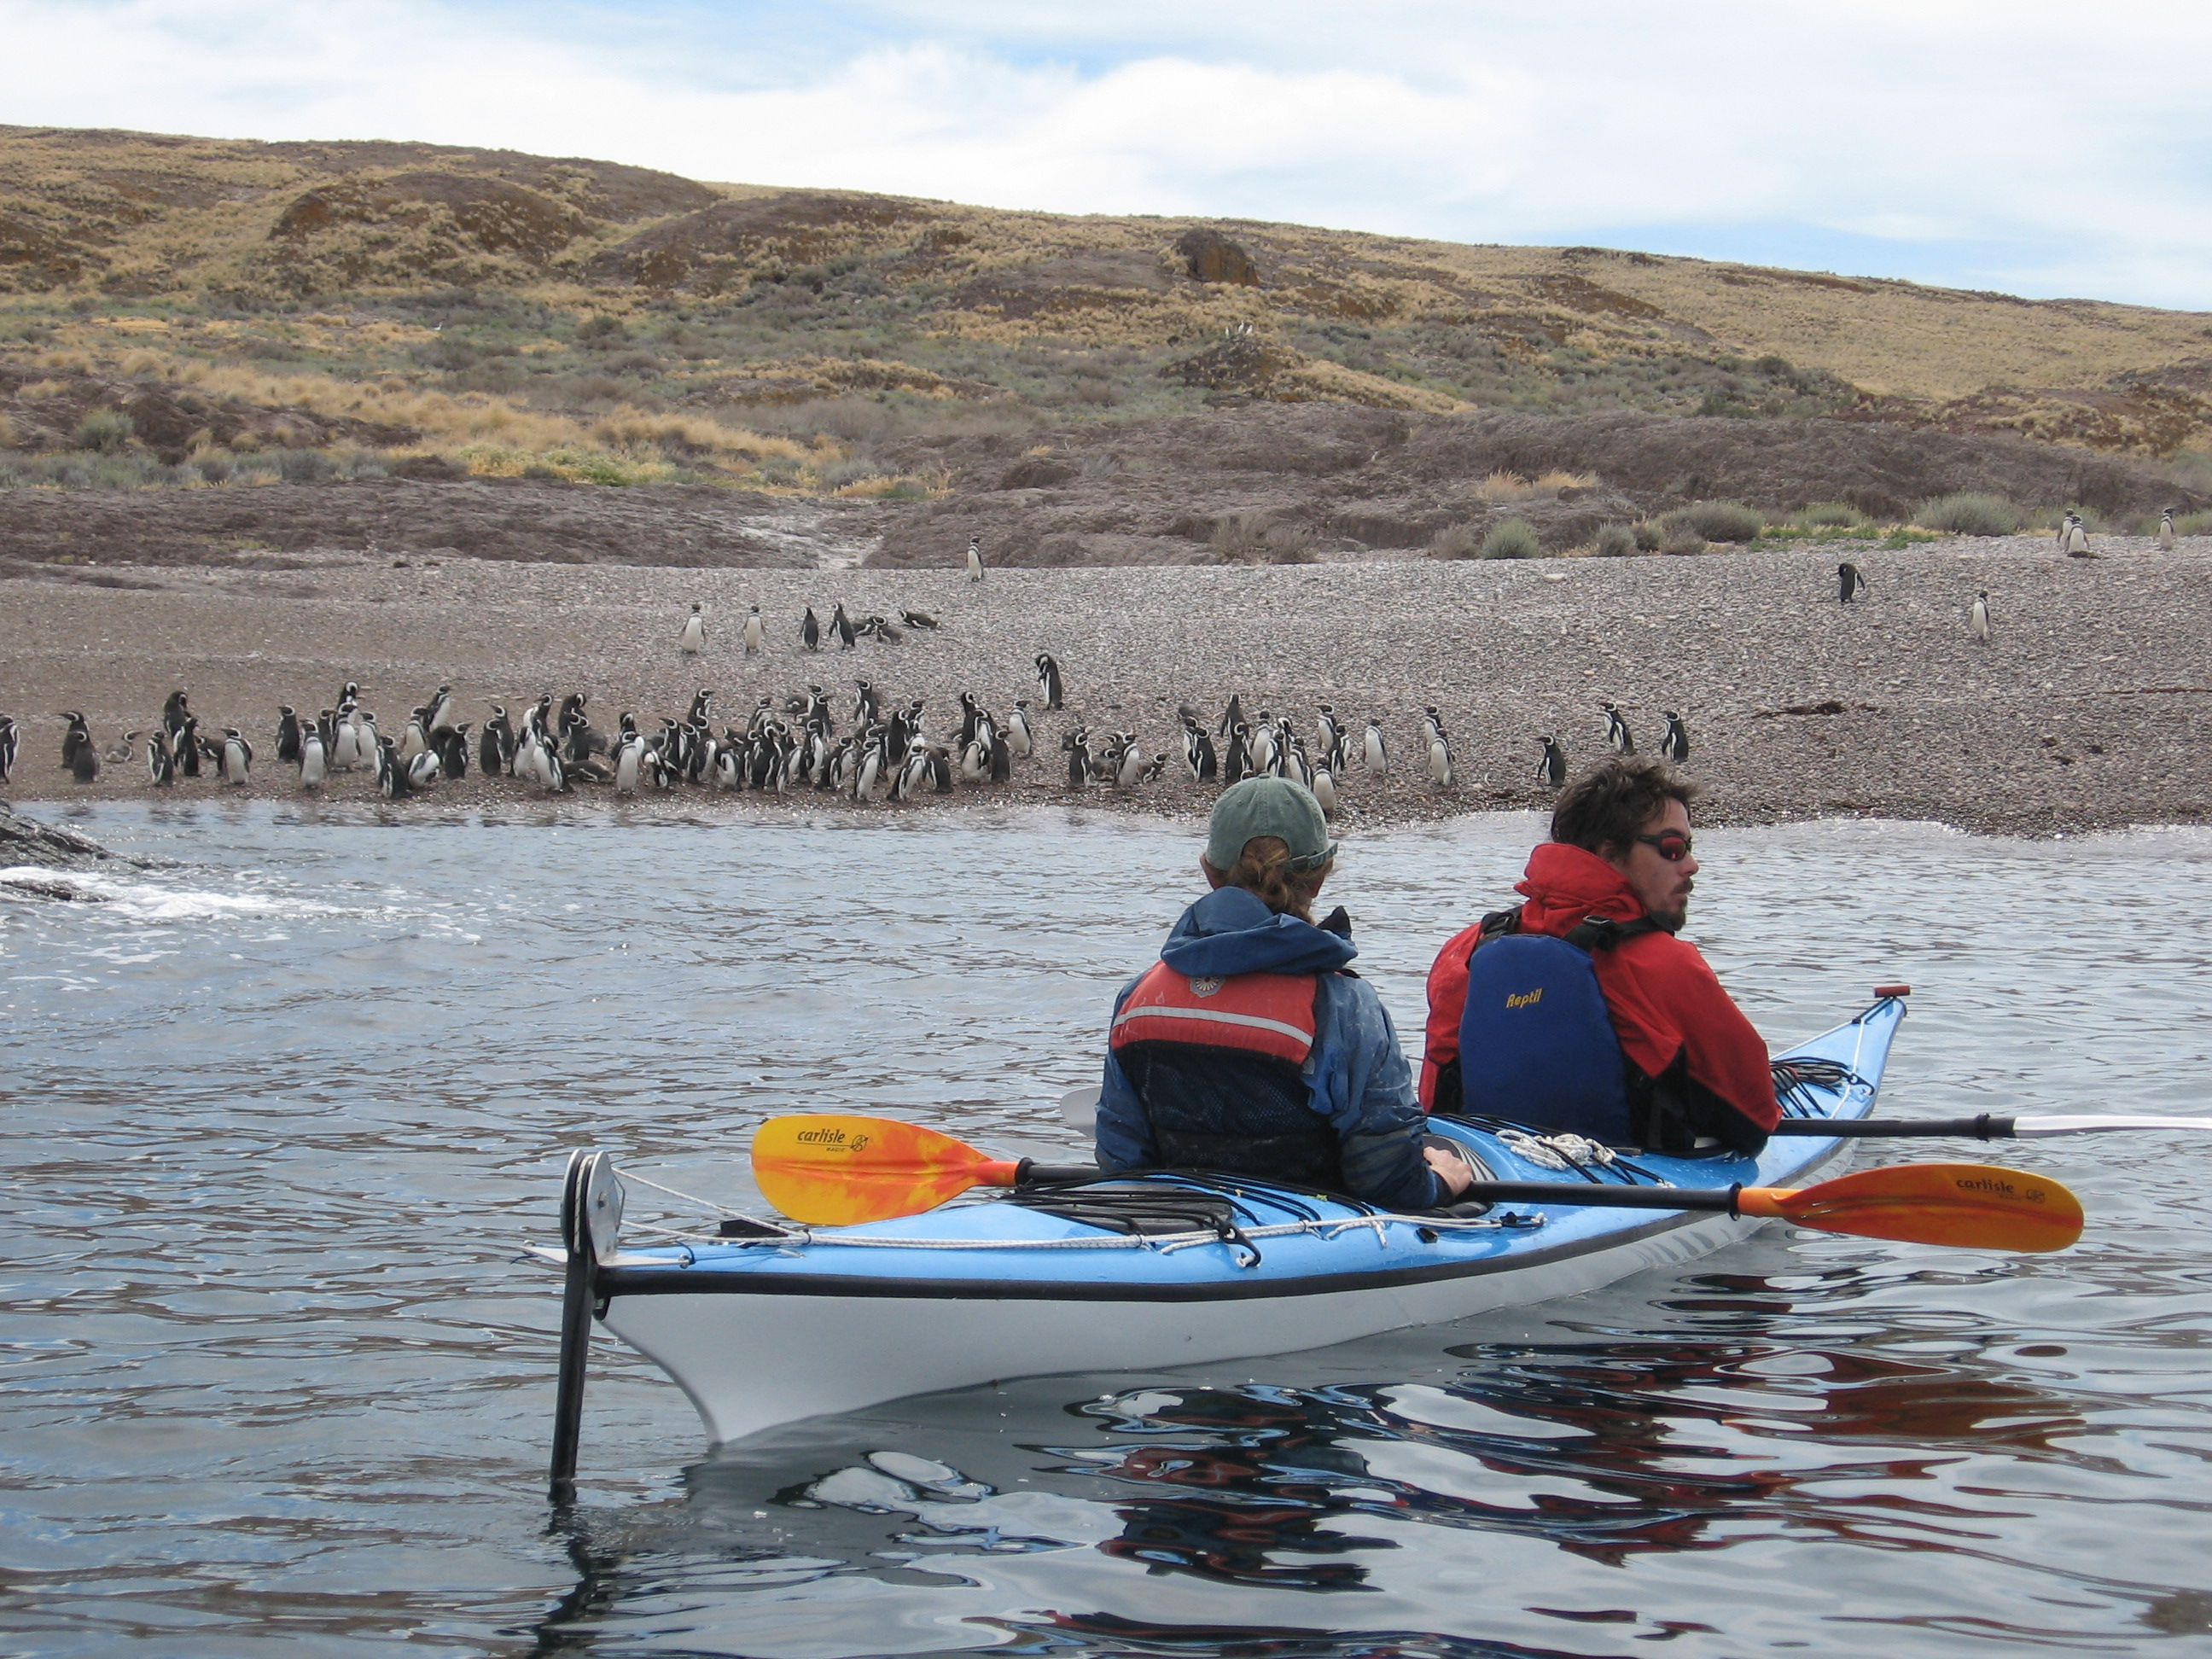 Kayak&PenguinsPatagoniaAutral.jpg